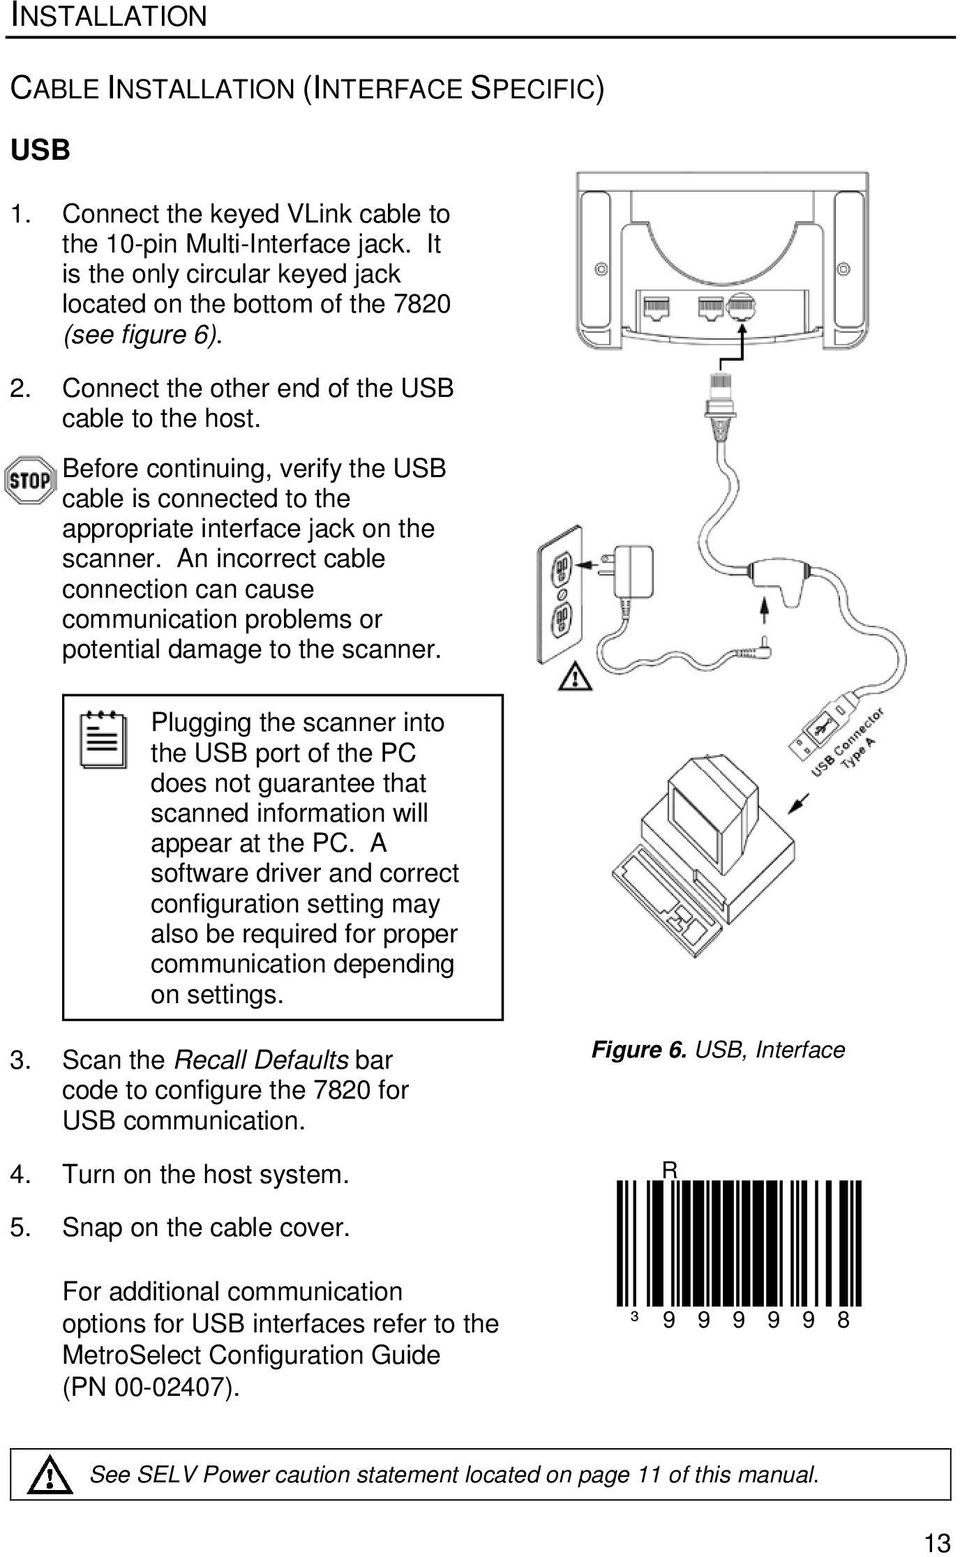 Before continuing, verify the USB cable is connected to the appropriate interface jack on the scanner.